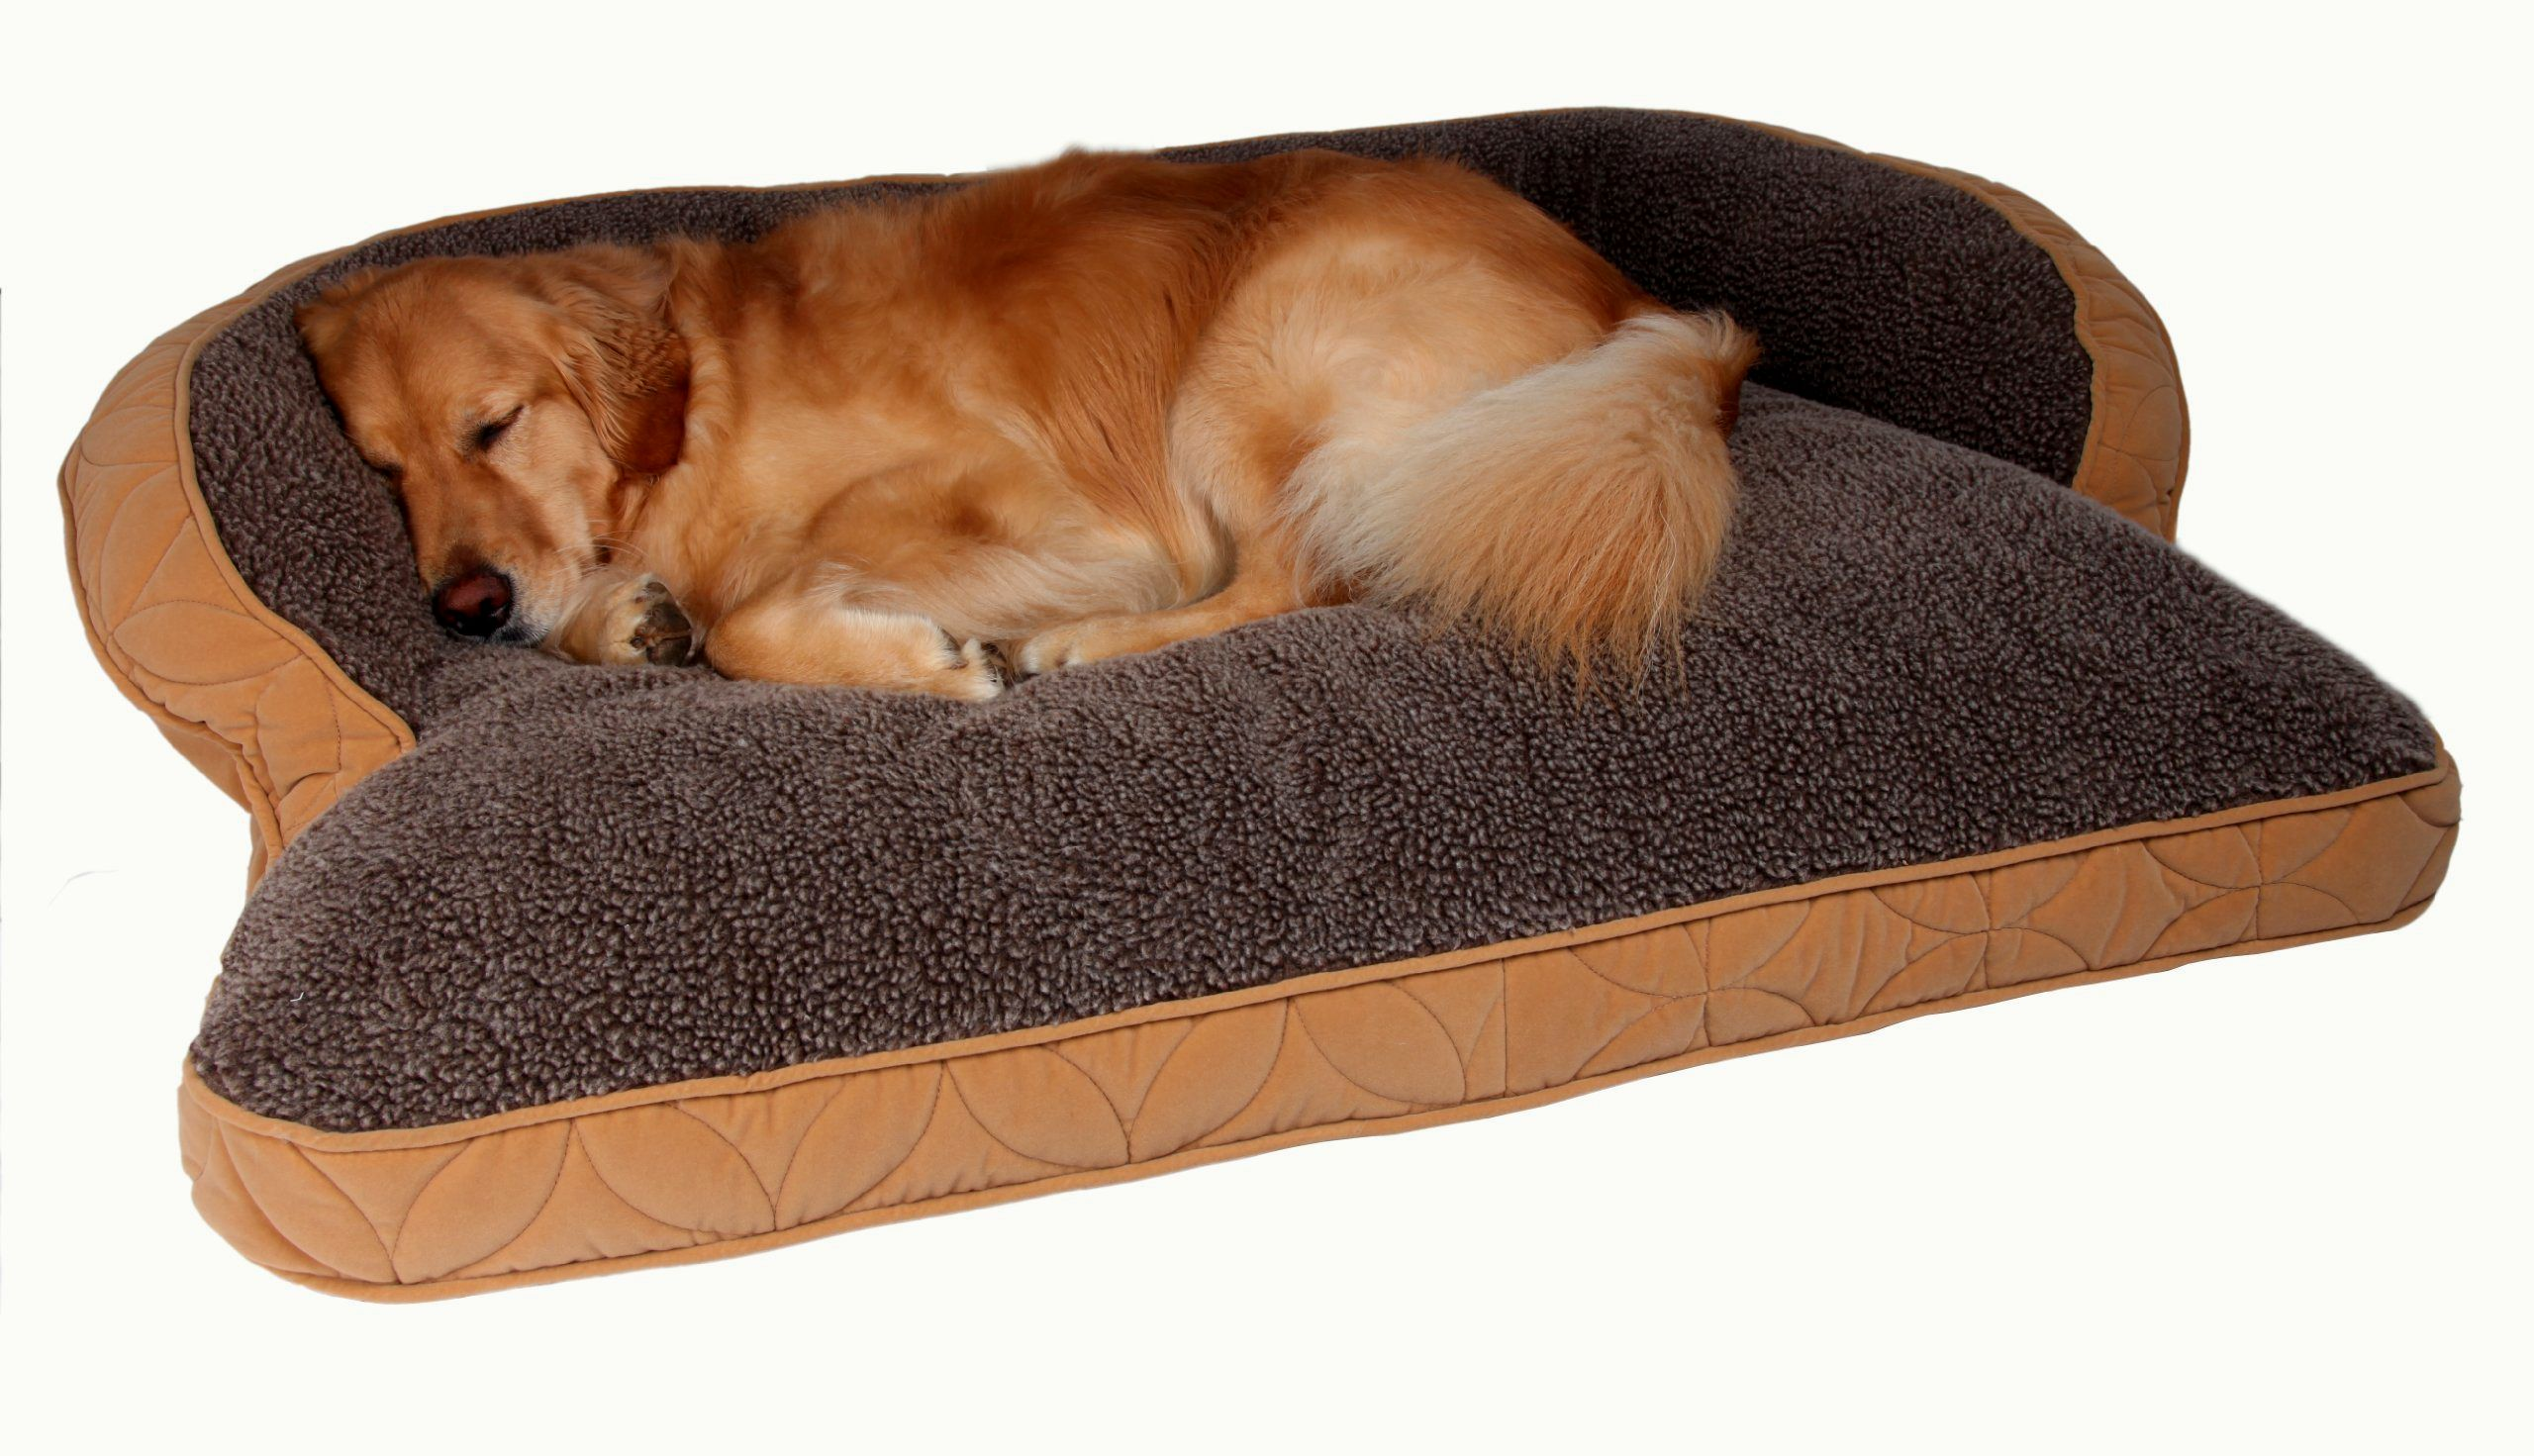 finest sofa dog bed ideas-Wonderful sofa Dog Bed Online